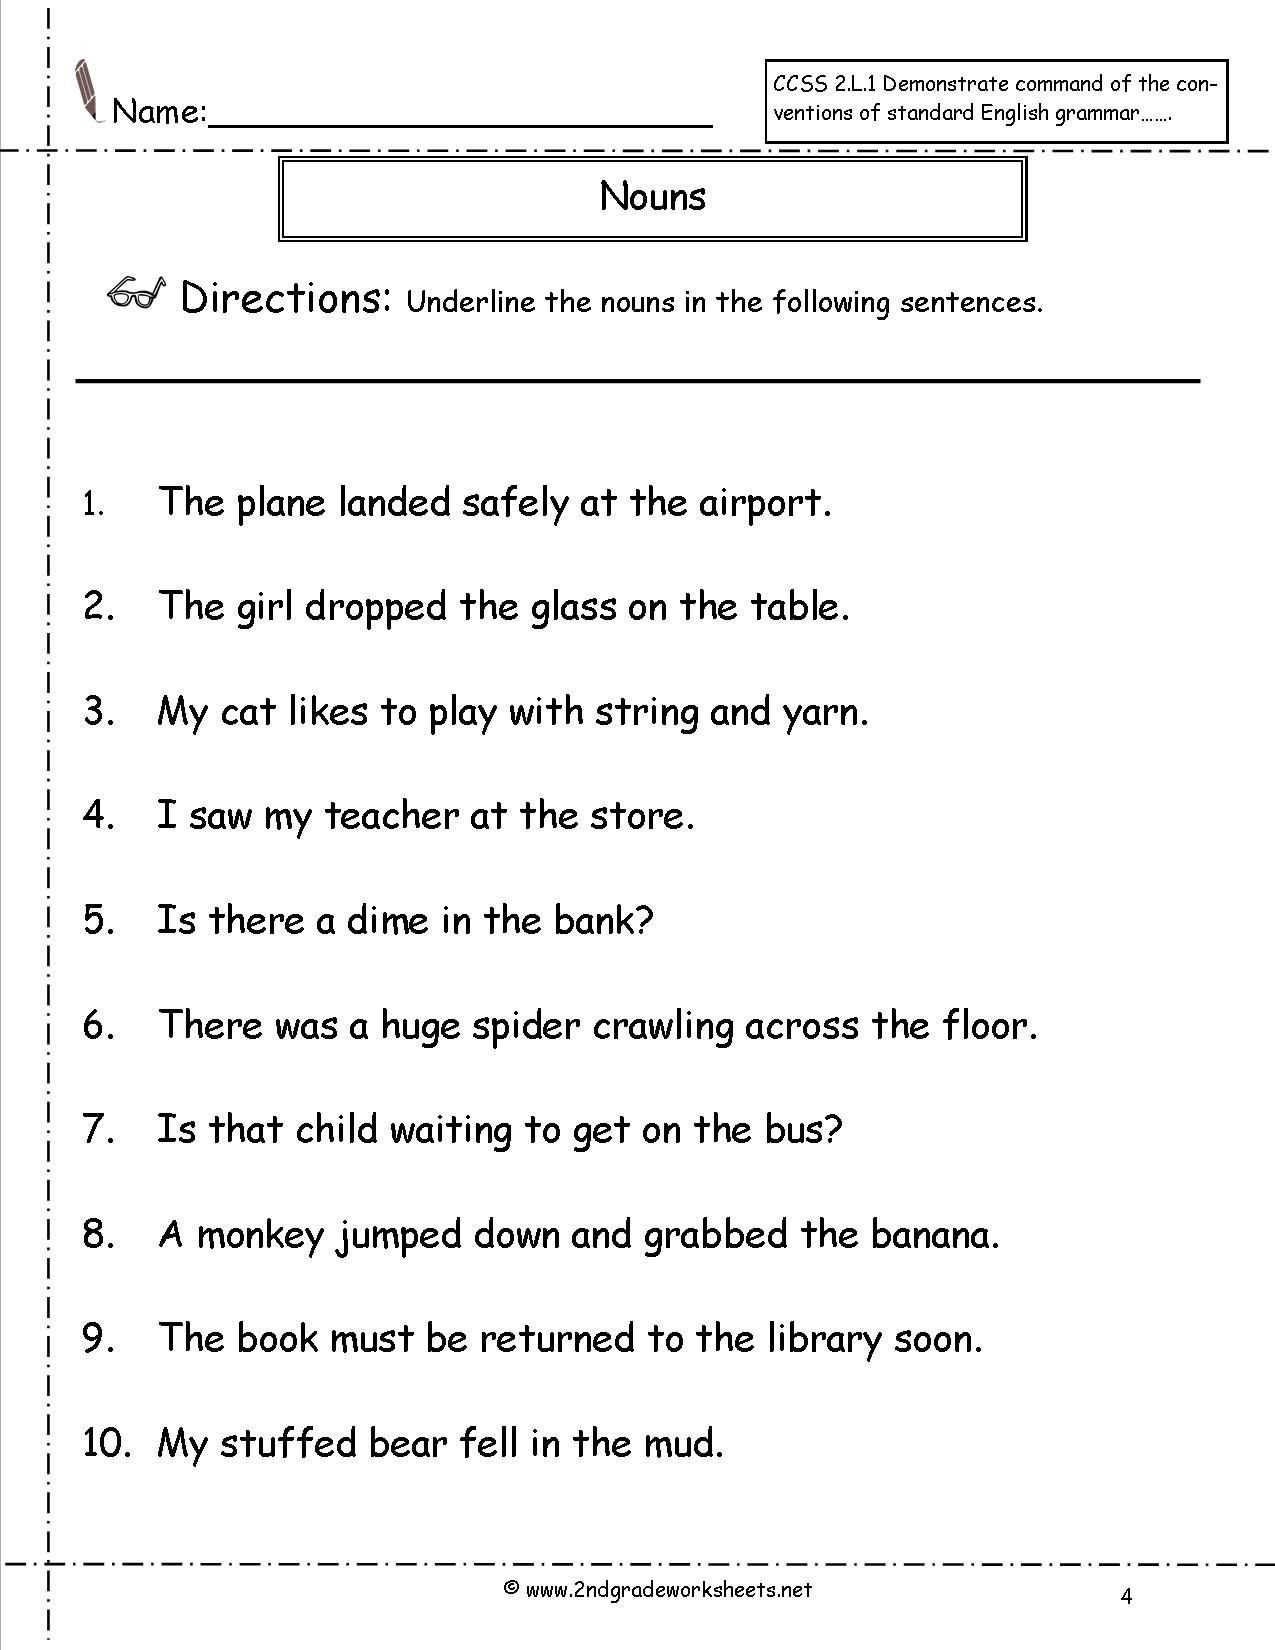 Adjective Worksheets 2nd Grade Nouns4 1275—1650